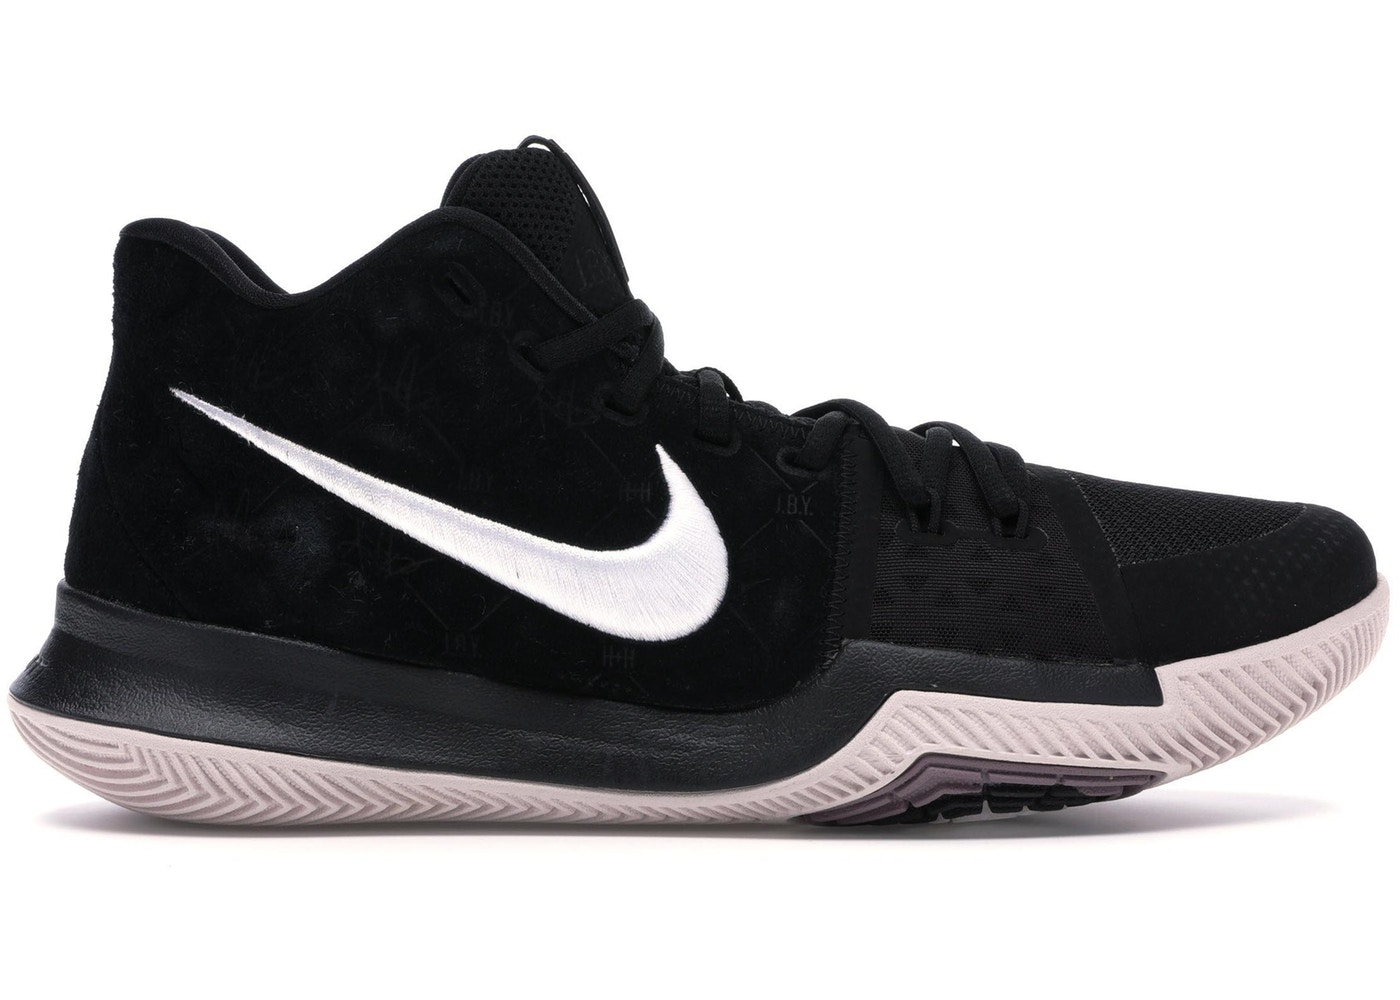 the best attitude 15d1f f03cb Kyrie 3 Black Suede